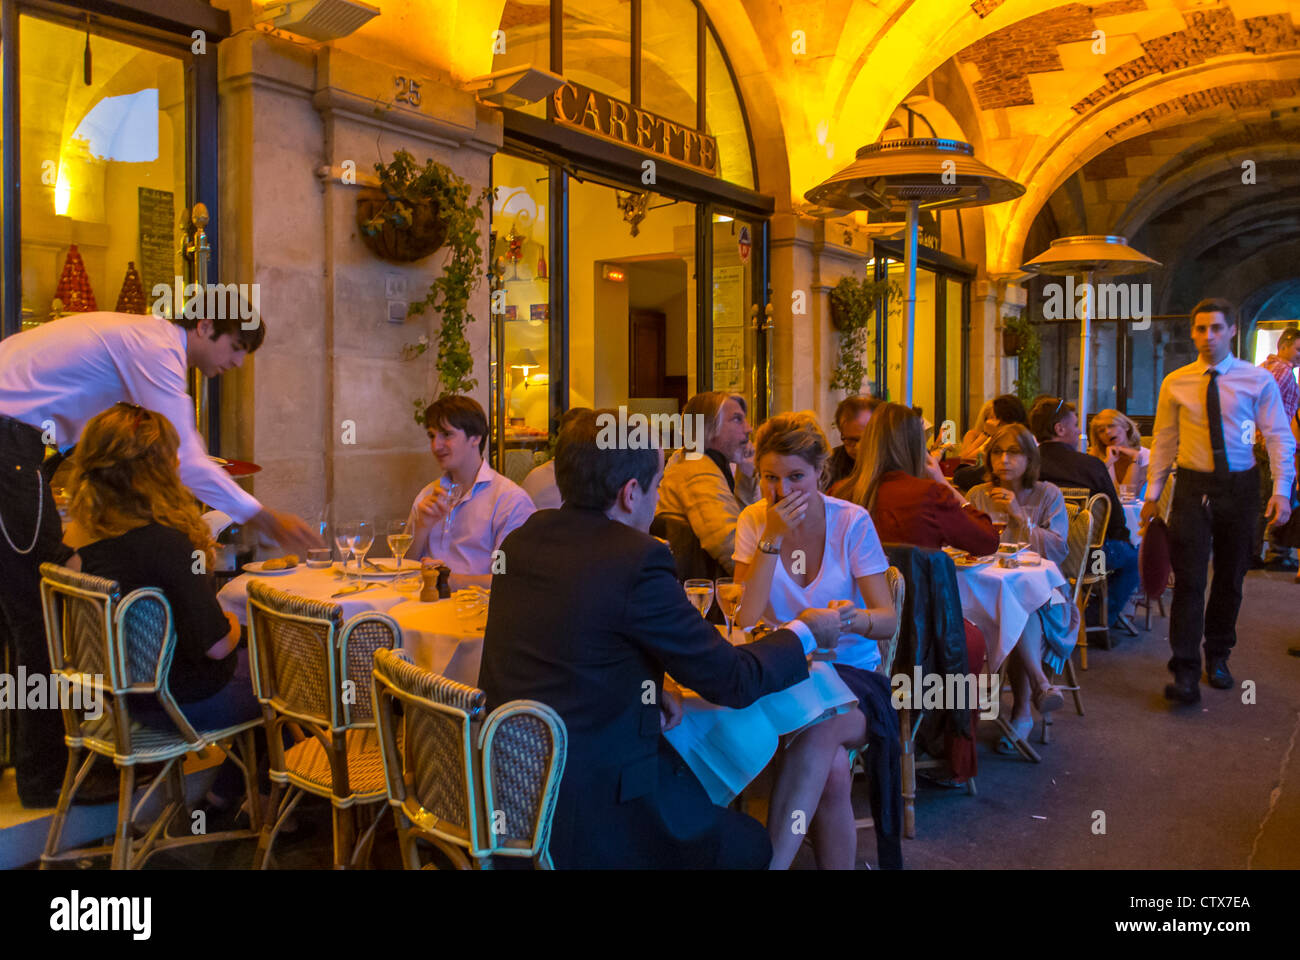 Paris France People Sharing Meals At French Bistro Café Stock